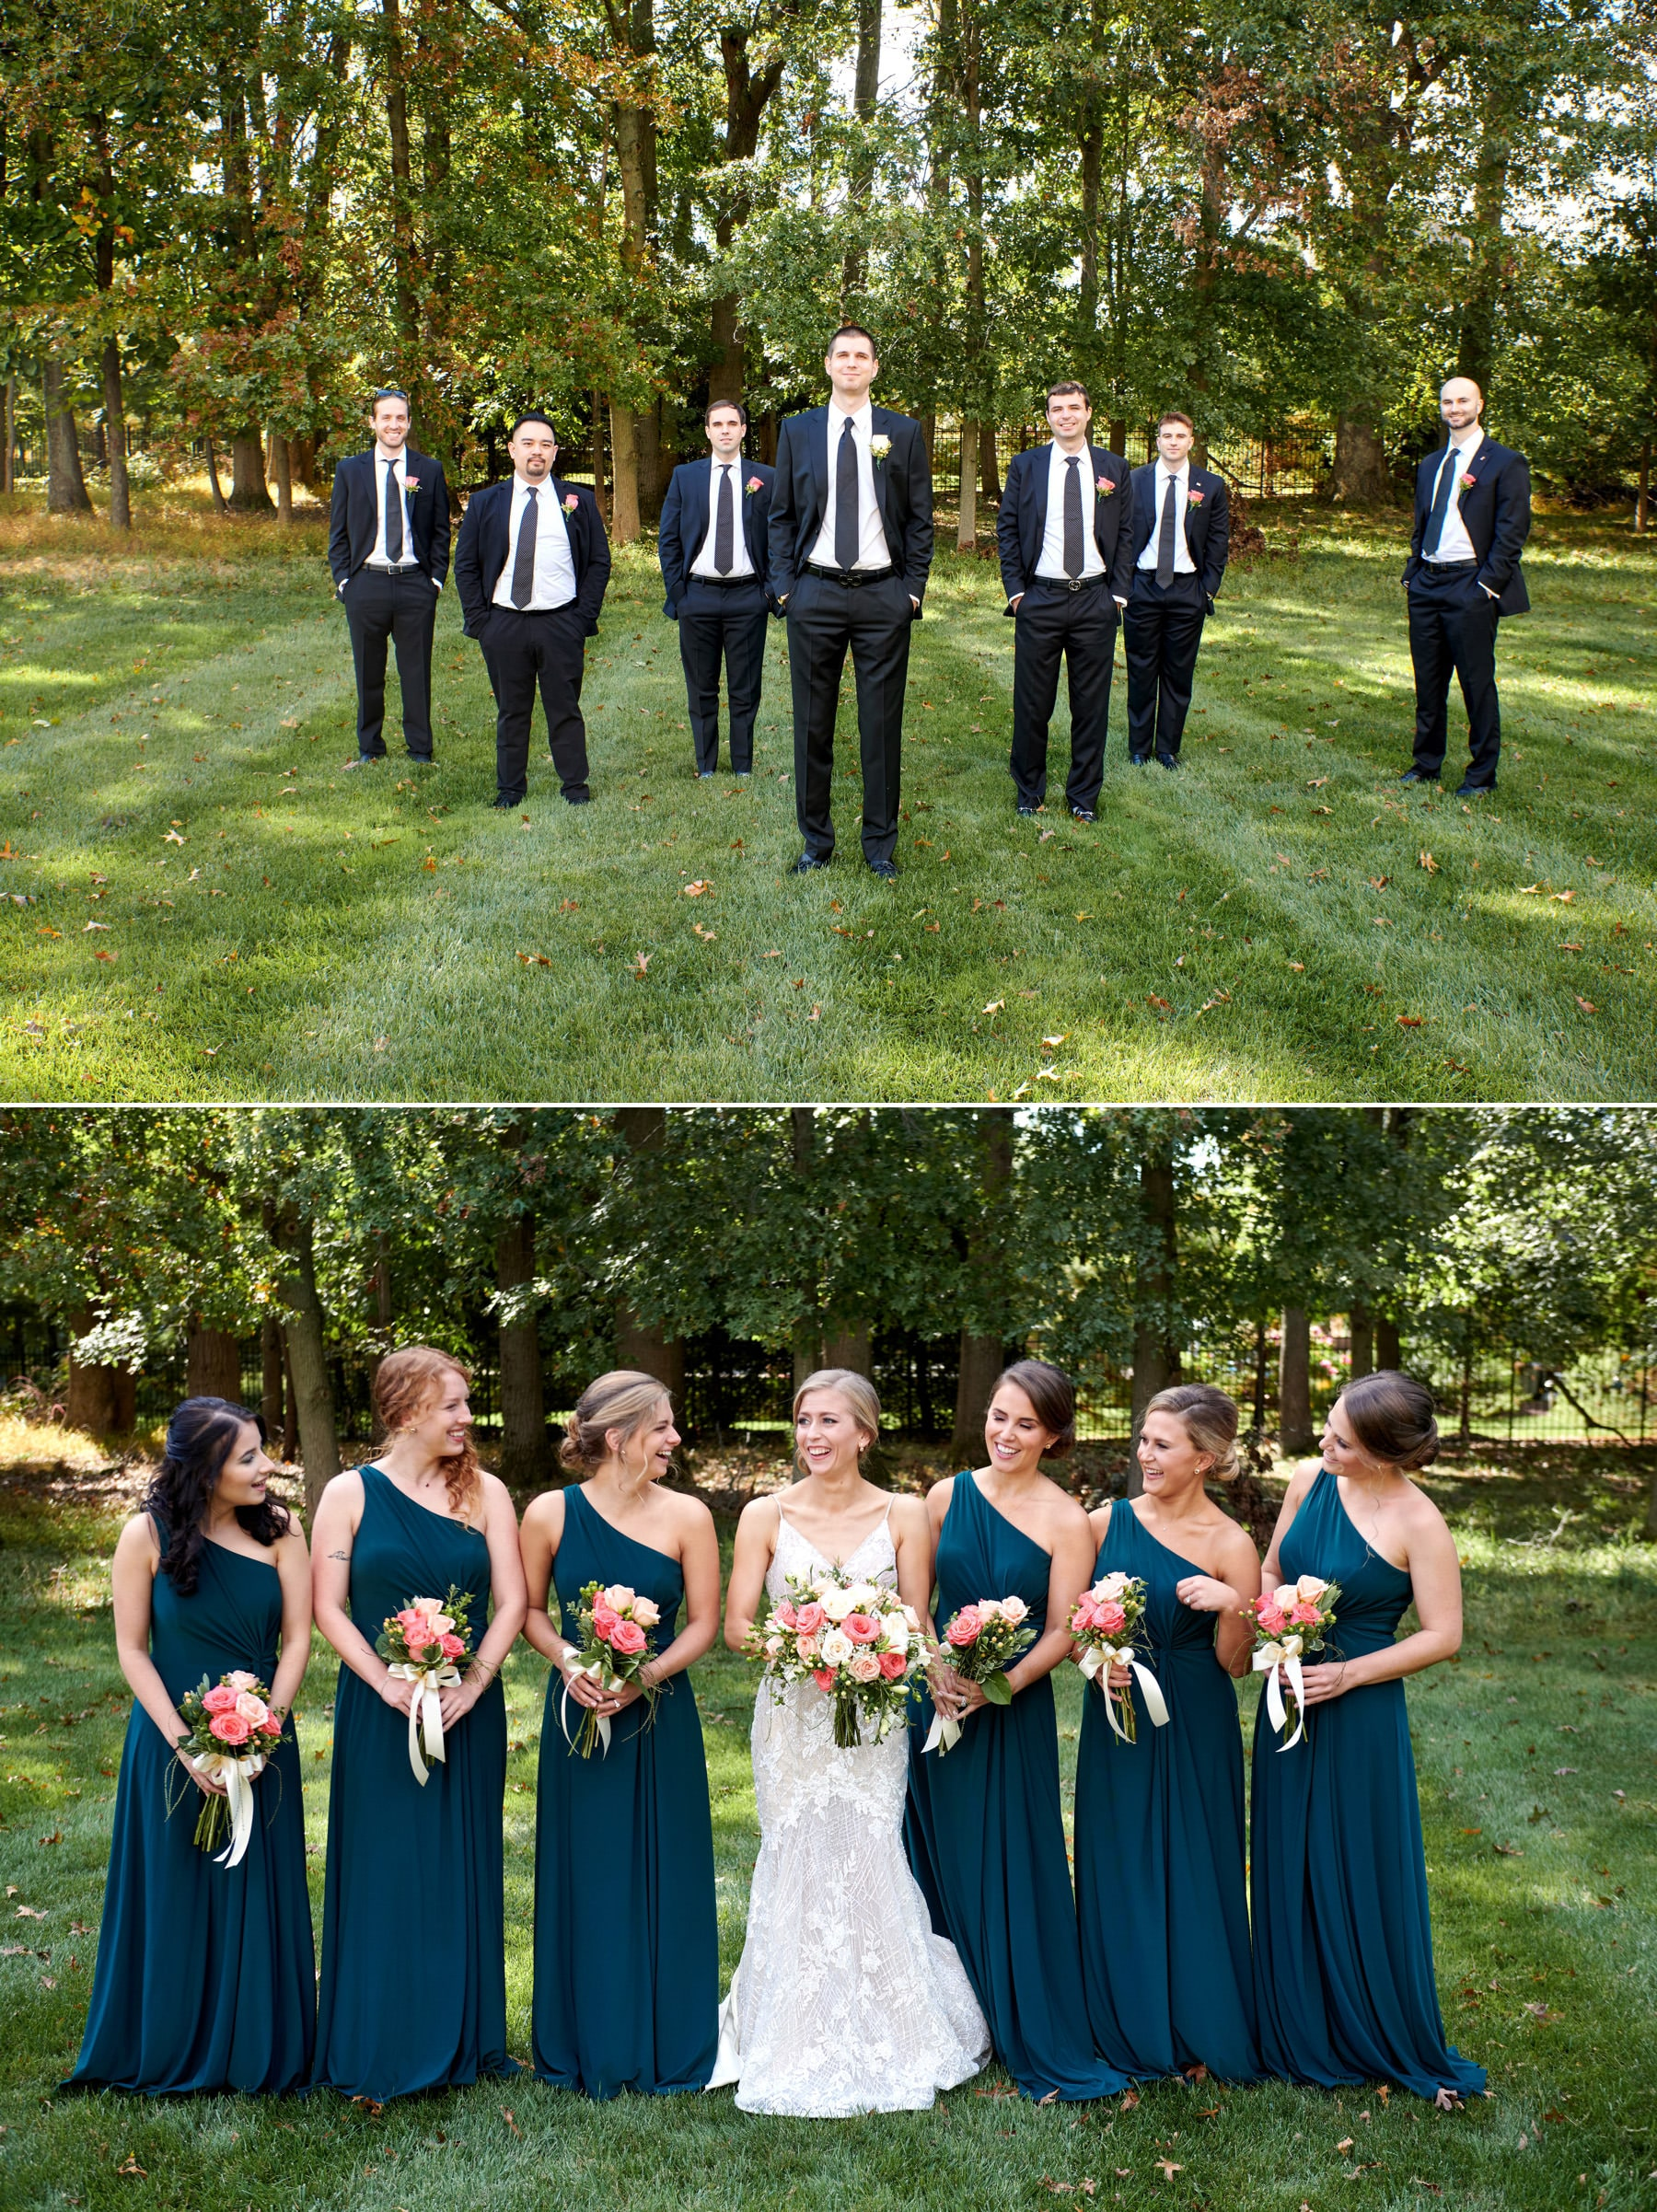 bridal party photo with guys and girls